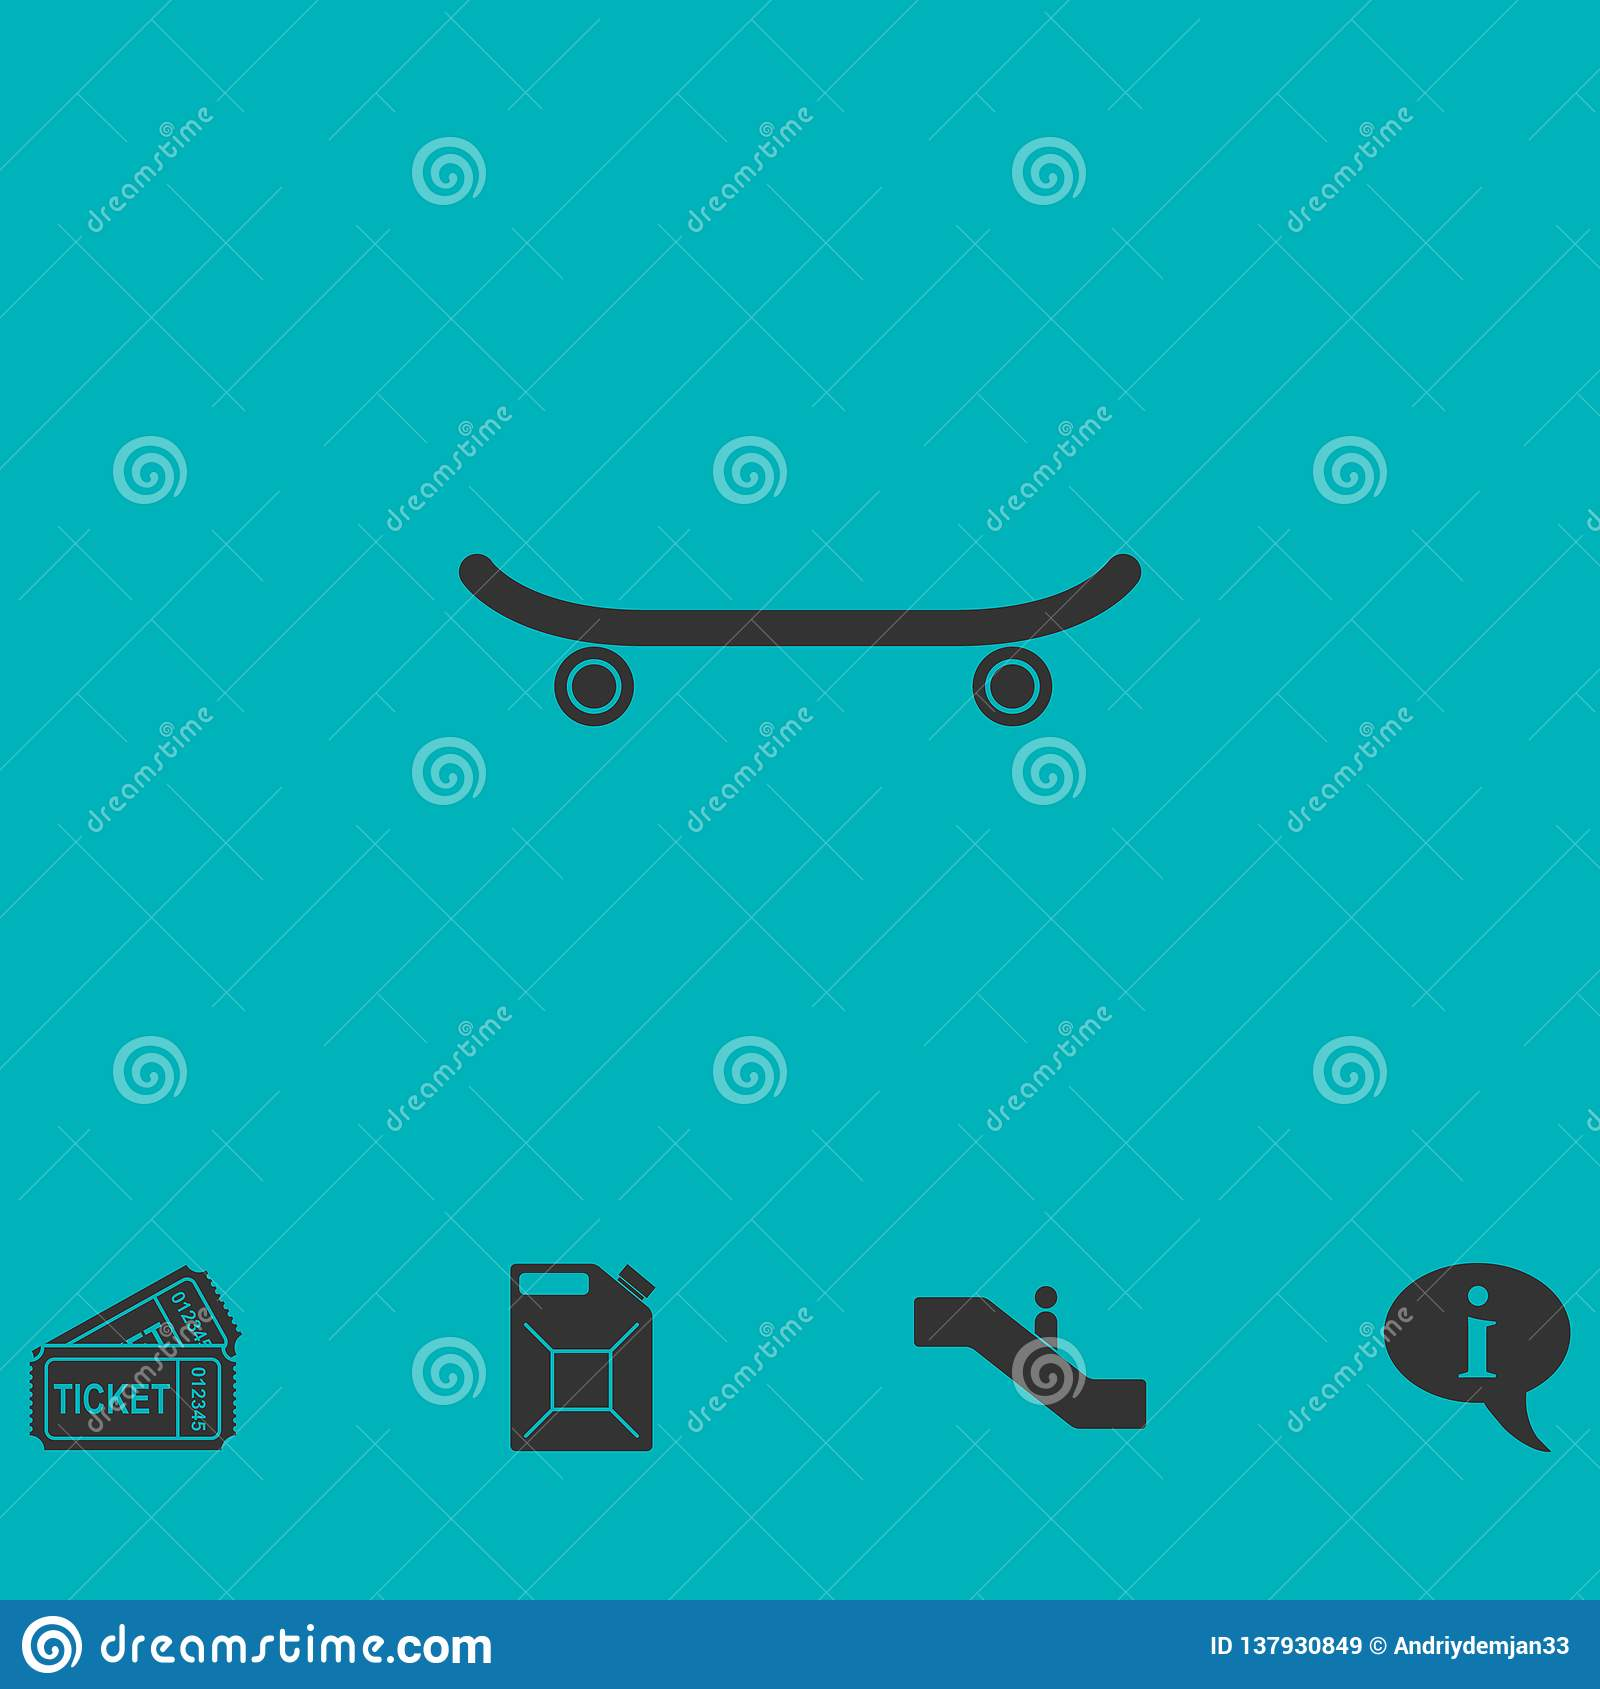 Vlak skateboardpictogram